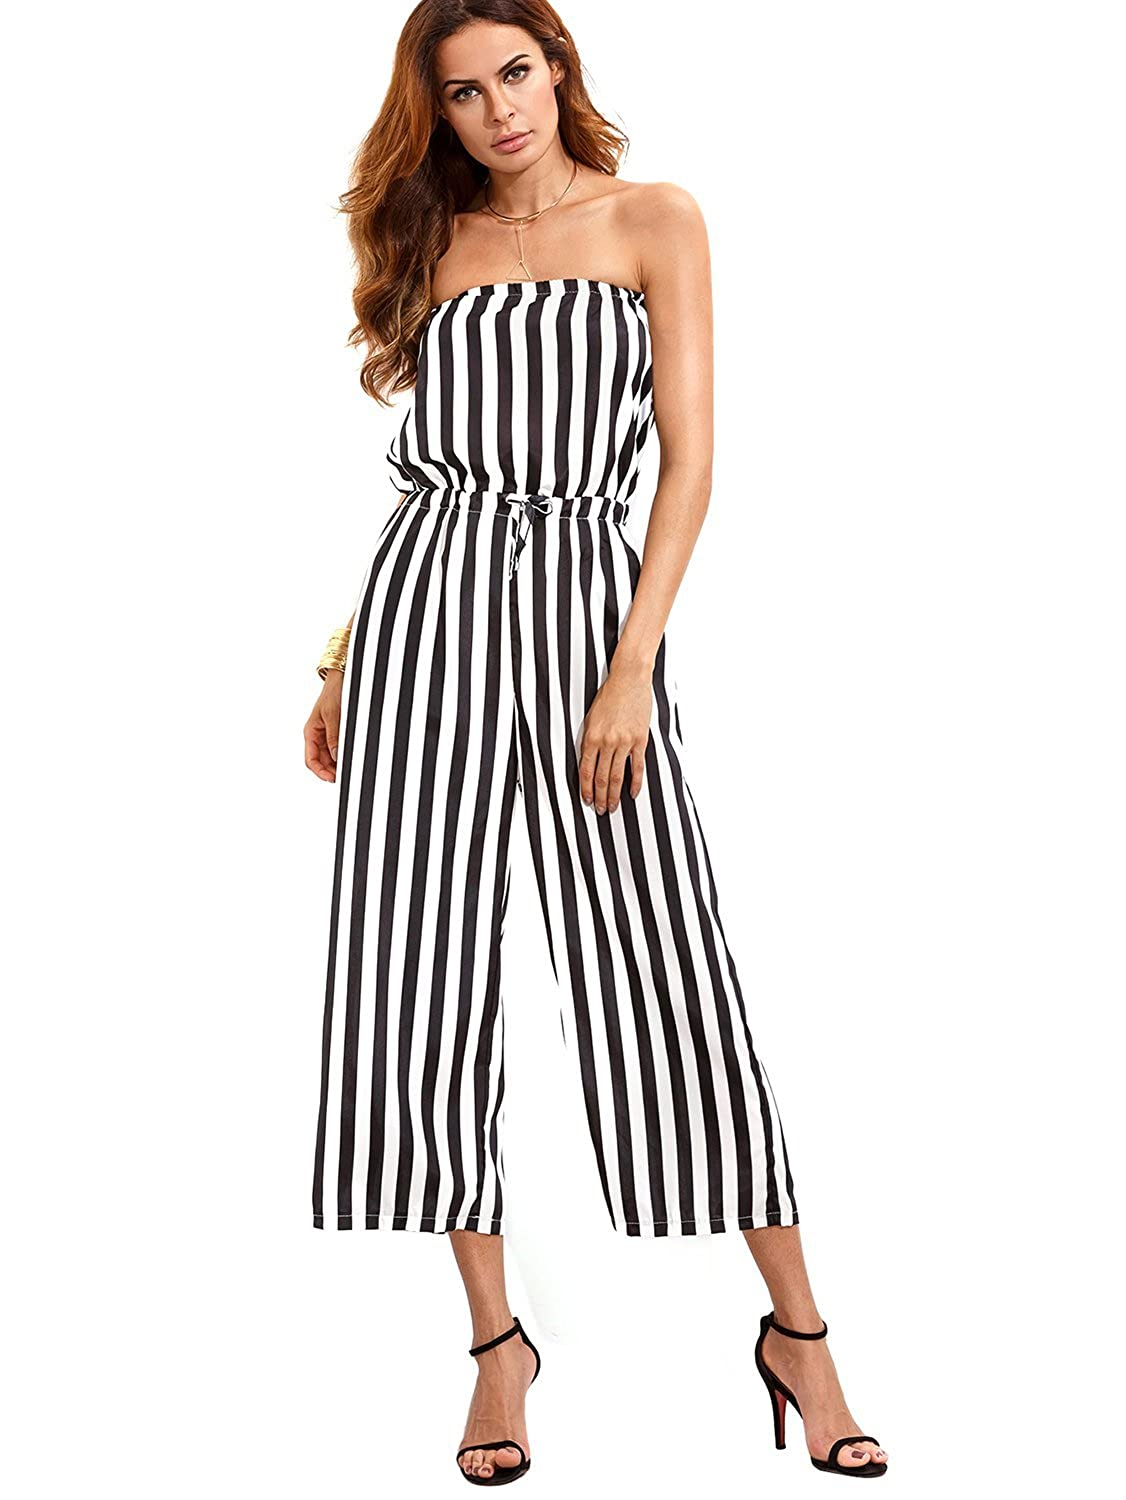 82d1bc42f5c Amazon.com  Code Women Strapless Jumpsuits Off Shoulder Cute Striped Wide  Leg Backless Summer Jumpsuits  Clothing